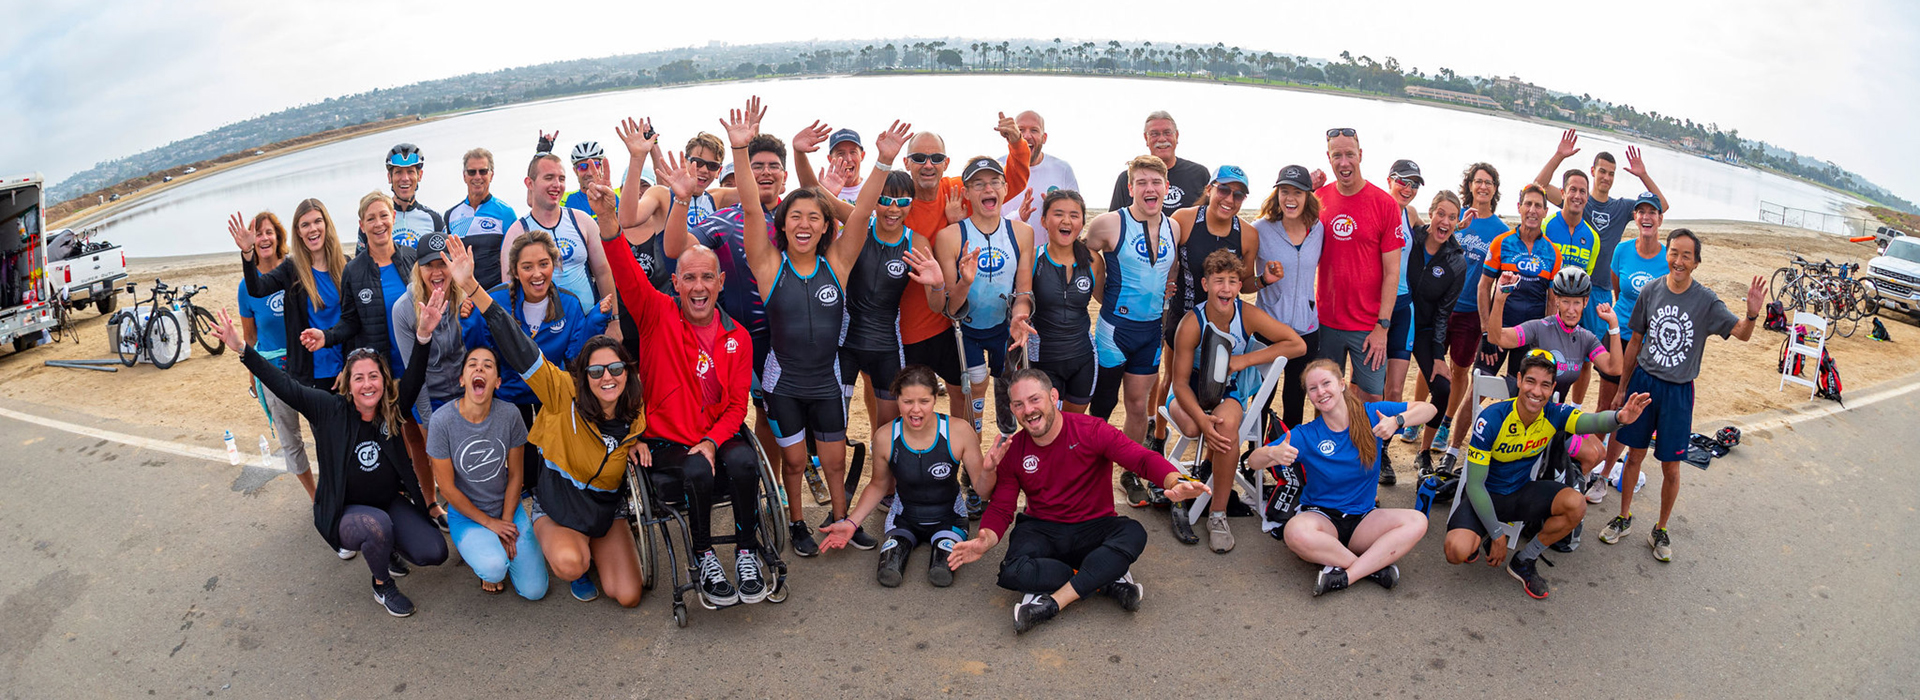 CAF Youth Paratriathlon Camp San Diego Group photo 2019